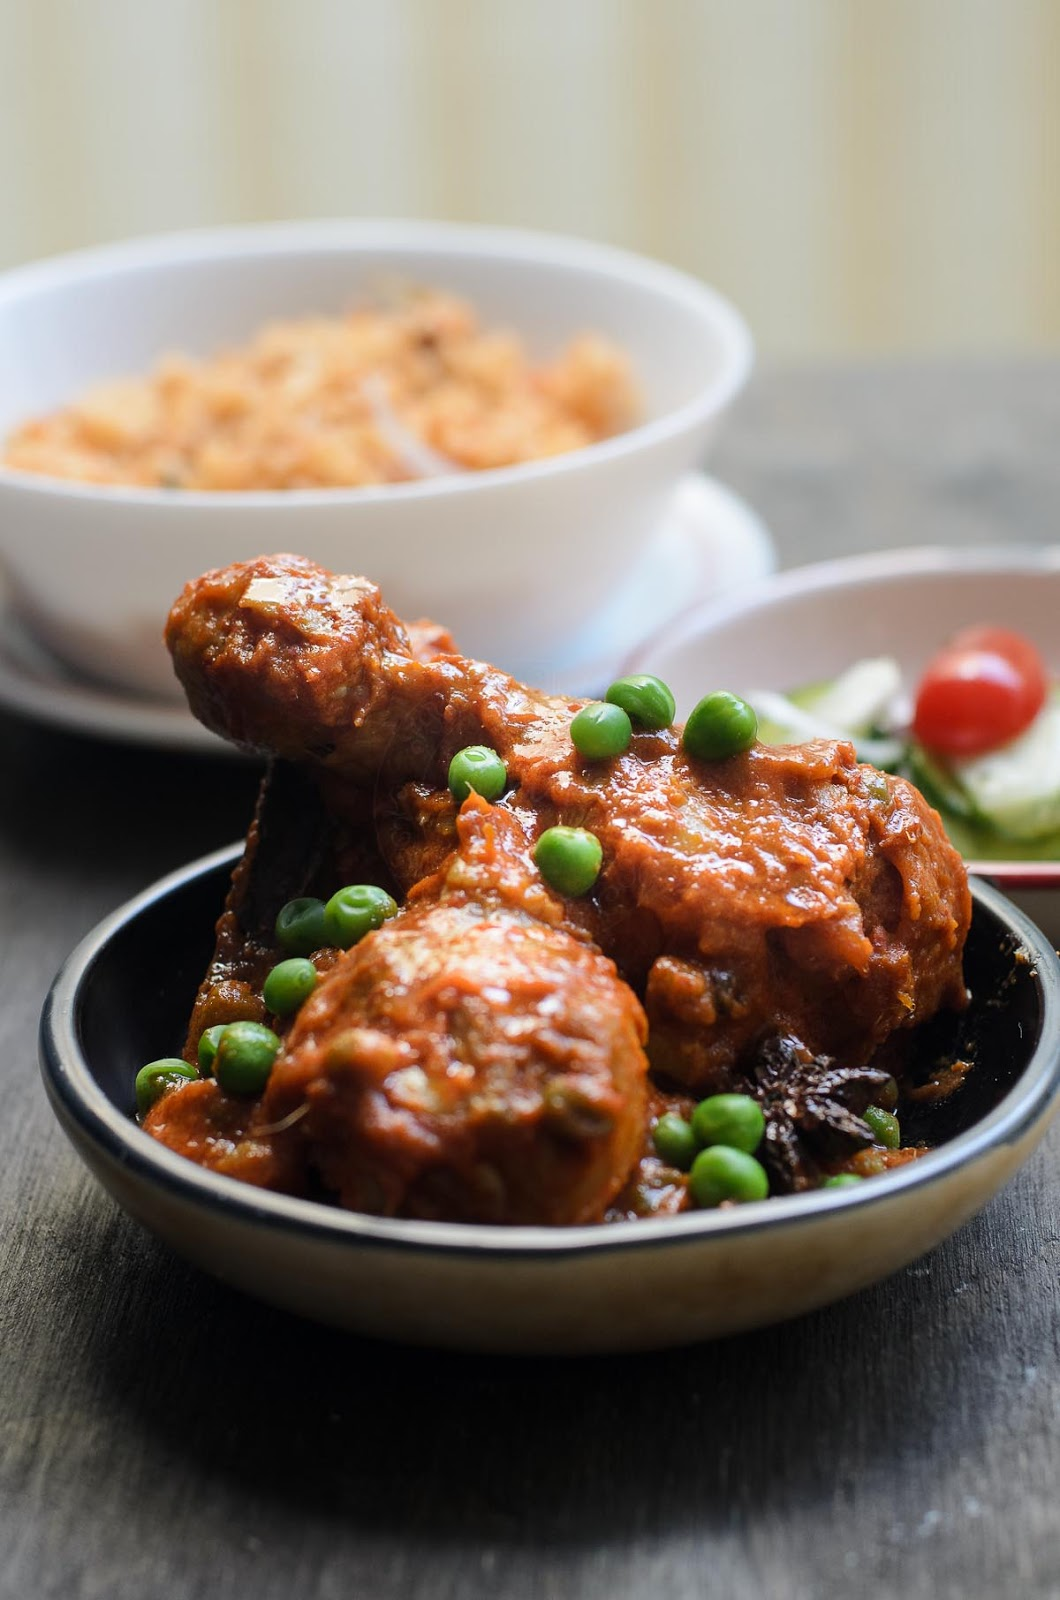 Malaysian fried chicken cooked in spiced tomato sauce